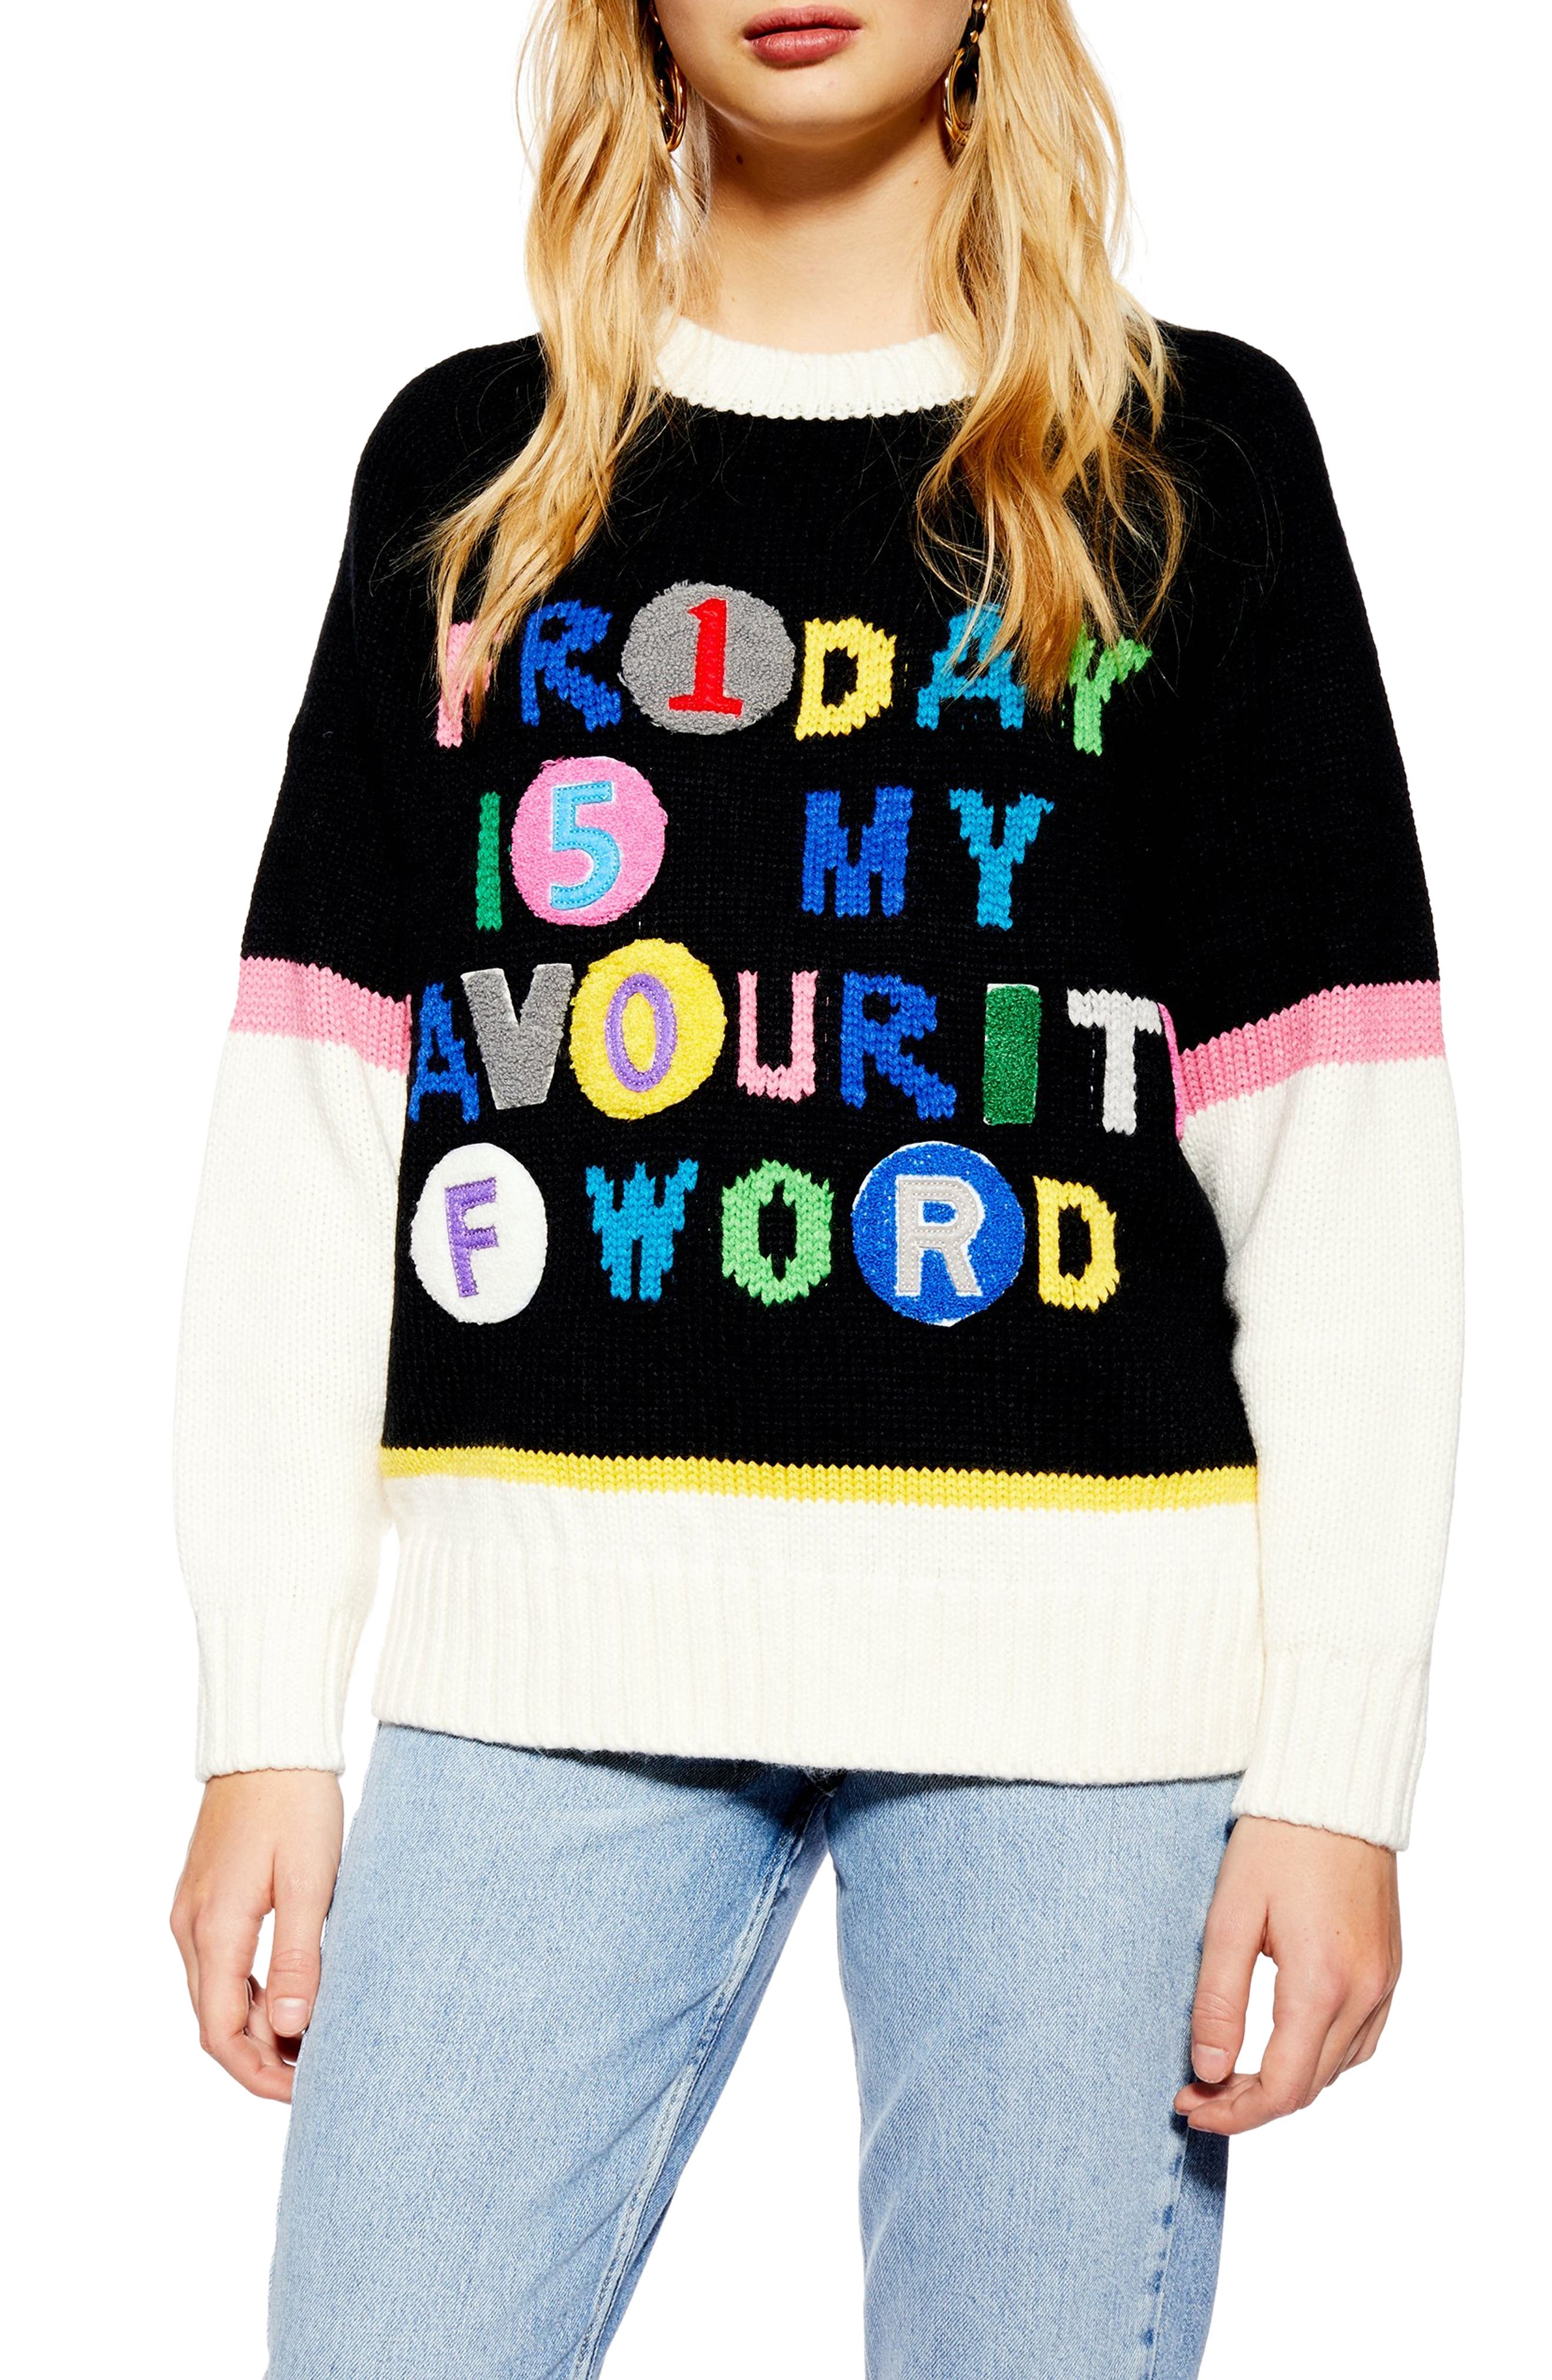 Topshop Friday Is My Fave Sweater, US (fits like 10-12) - Black